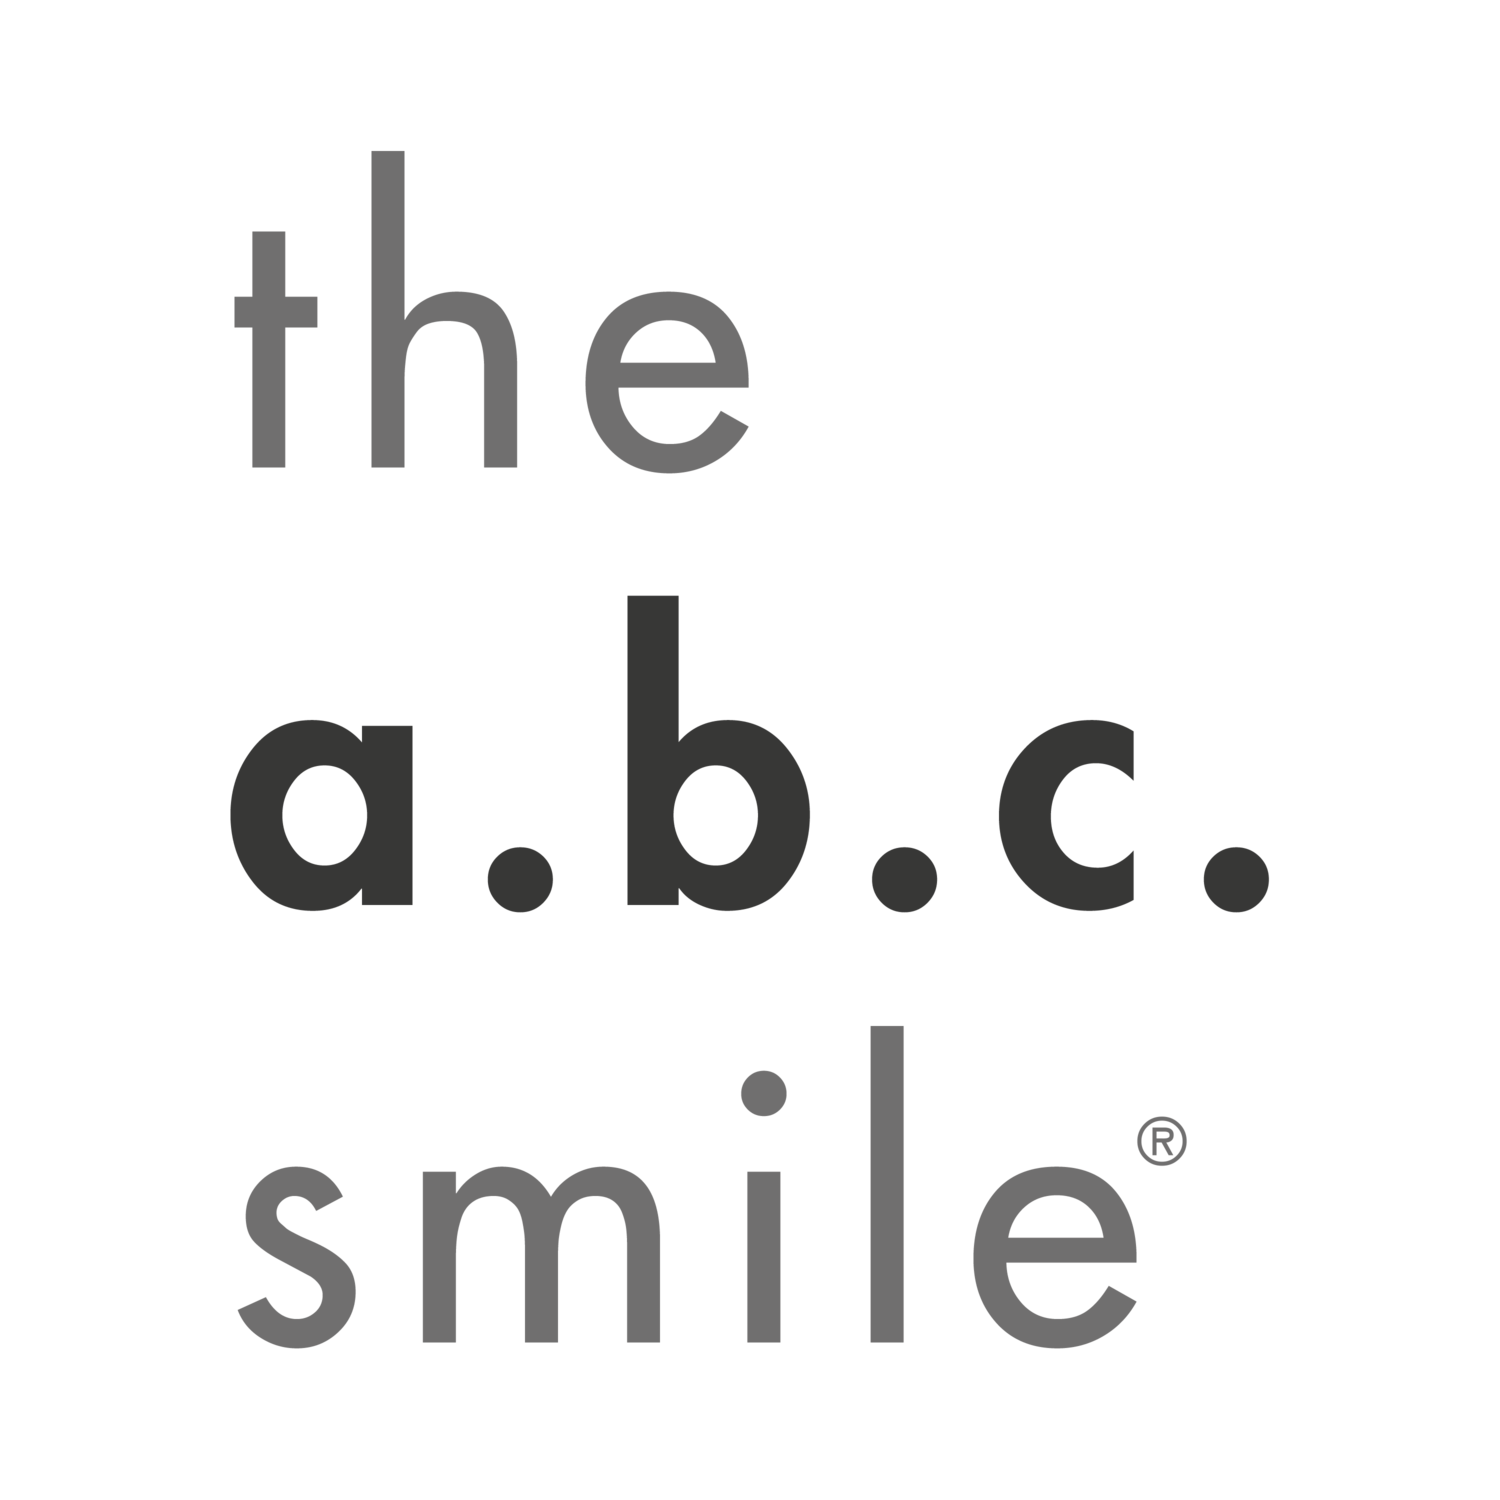 the a.b.c. smile ™